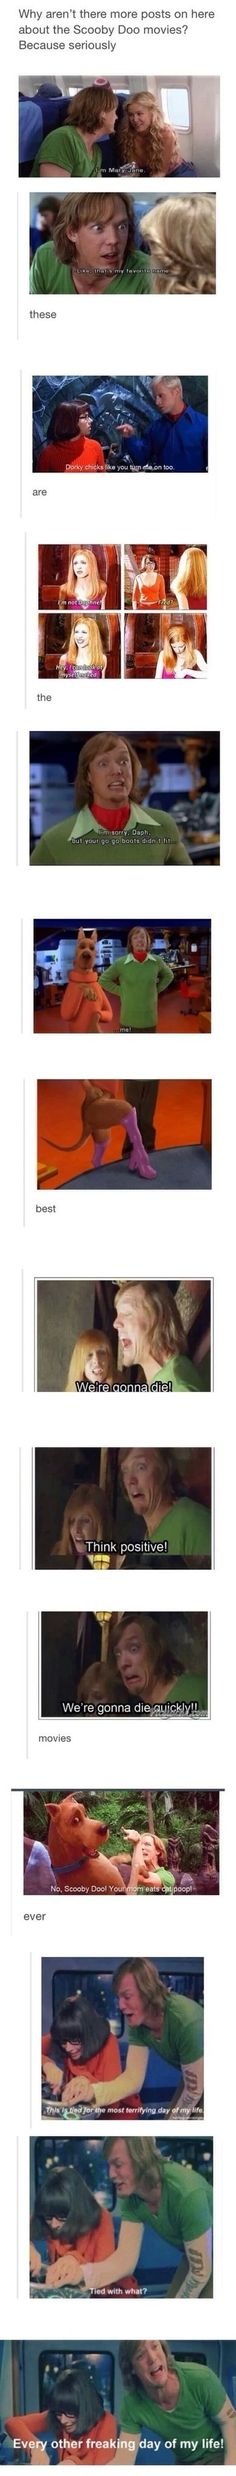 I love Scooby-Doo so much